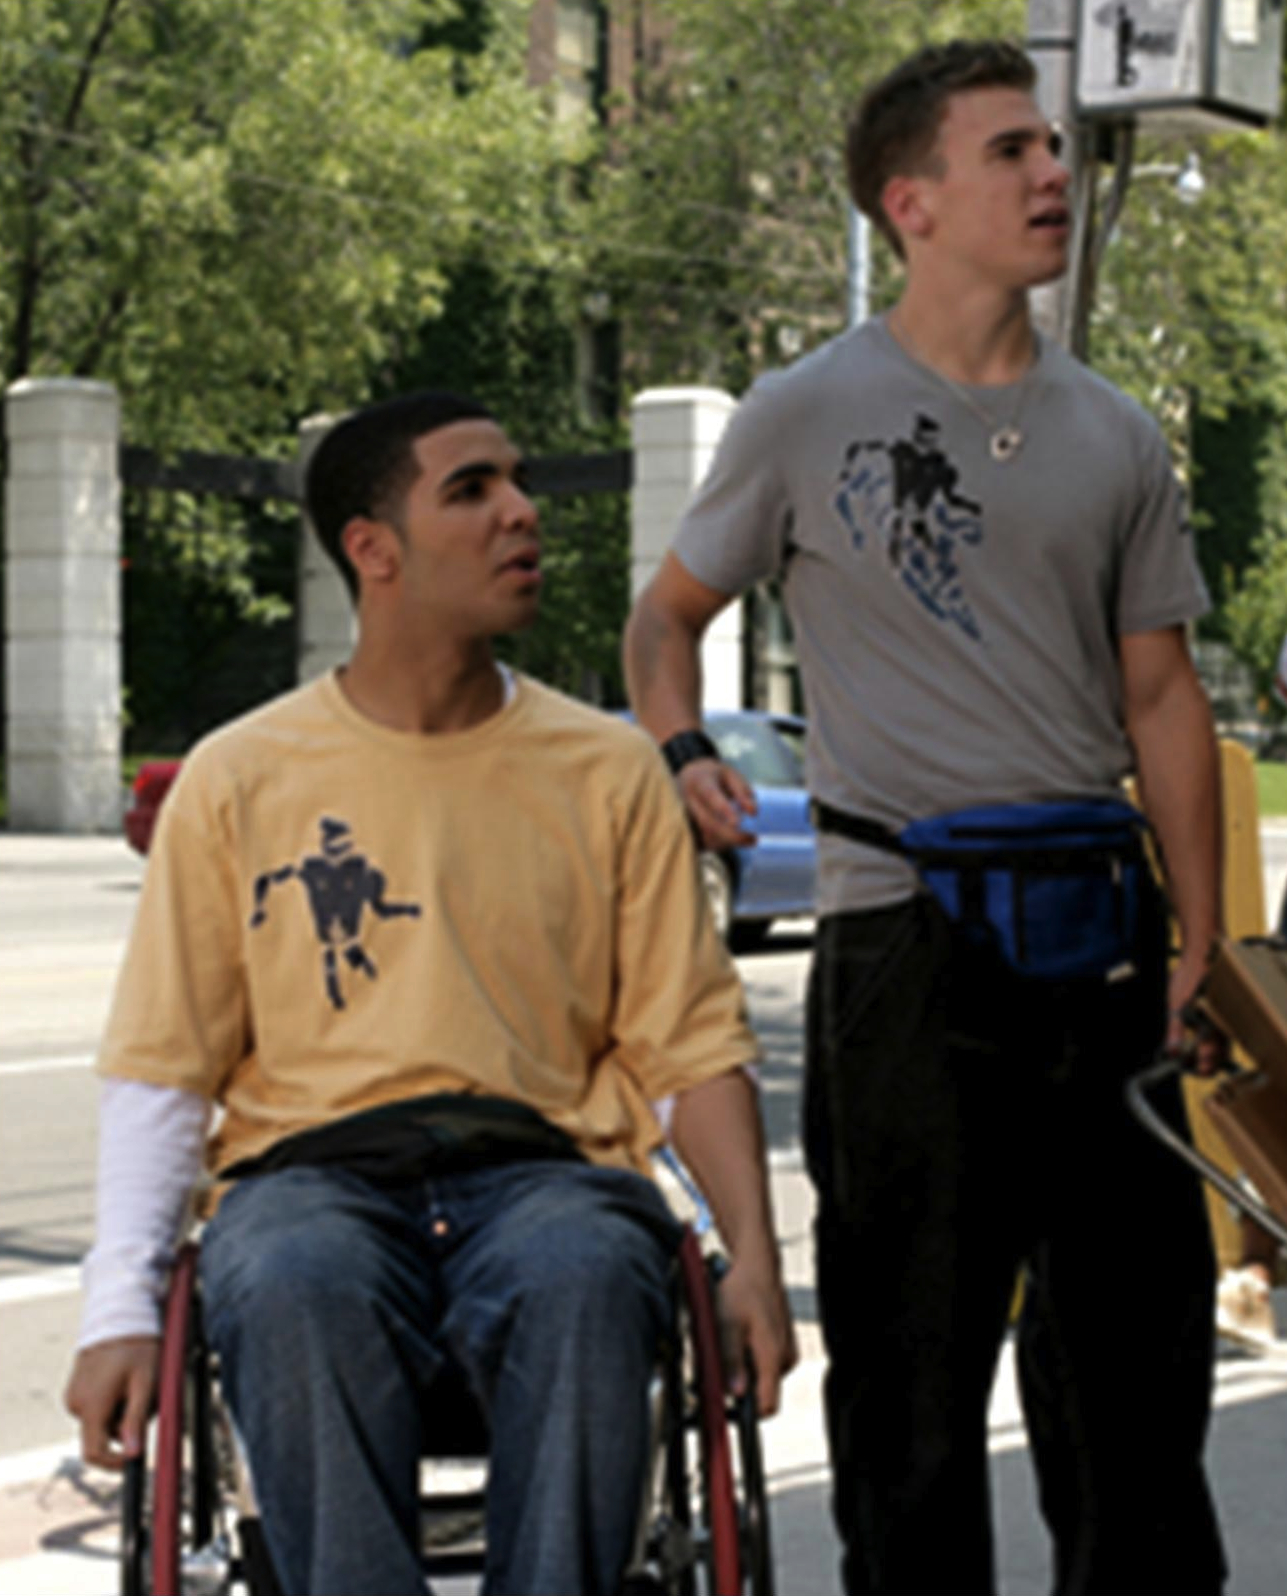 wheelchair drake high bar chairs with arms drizzy remixes the chazz rockwell blog